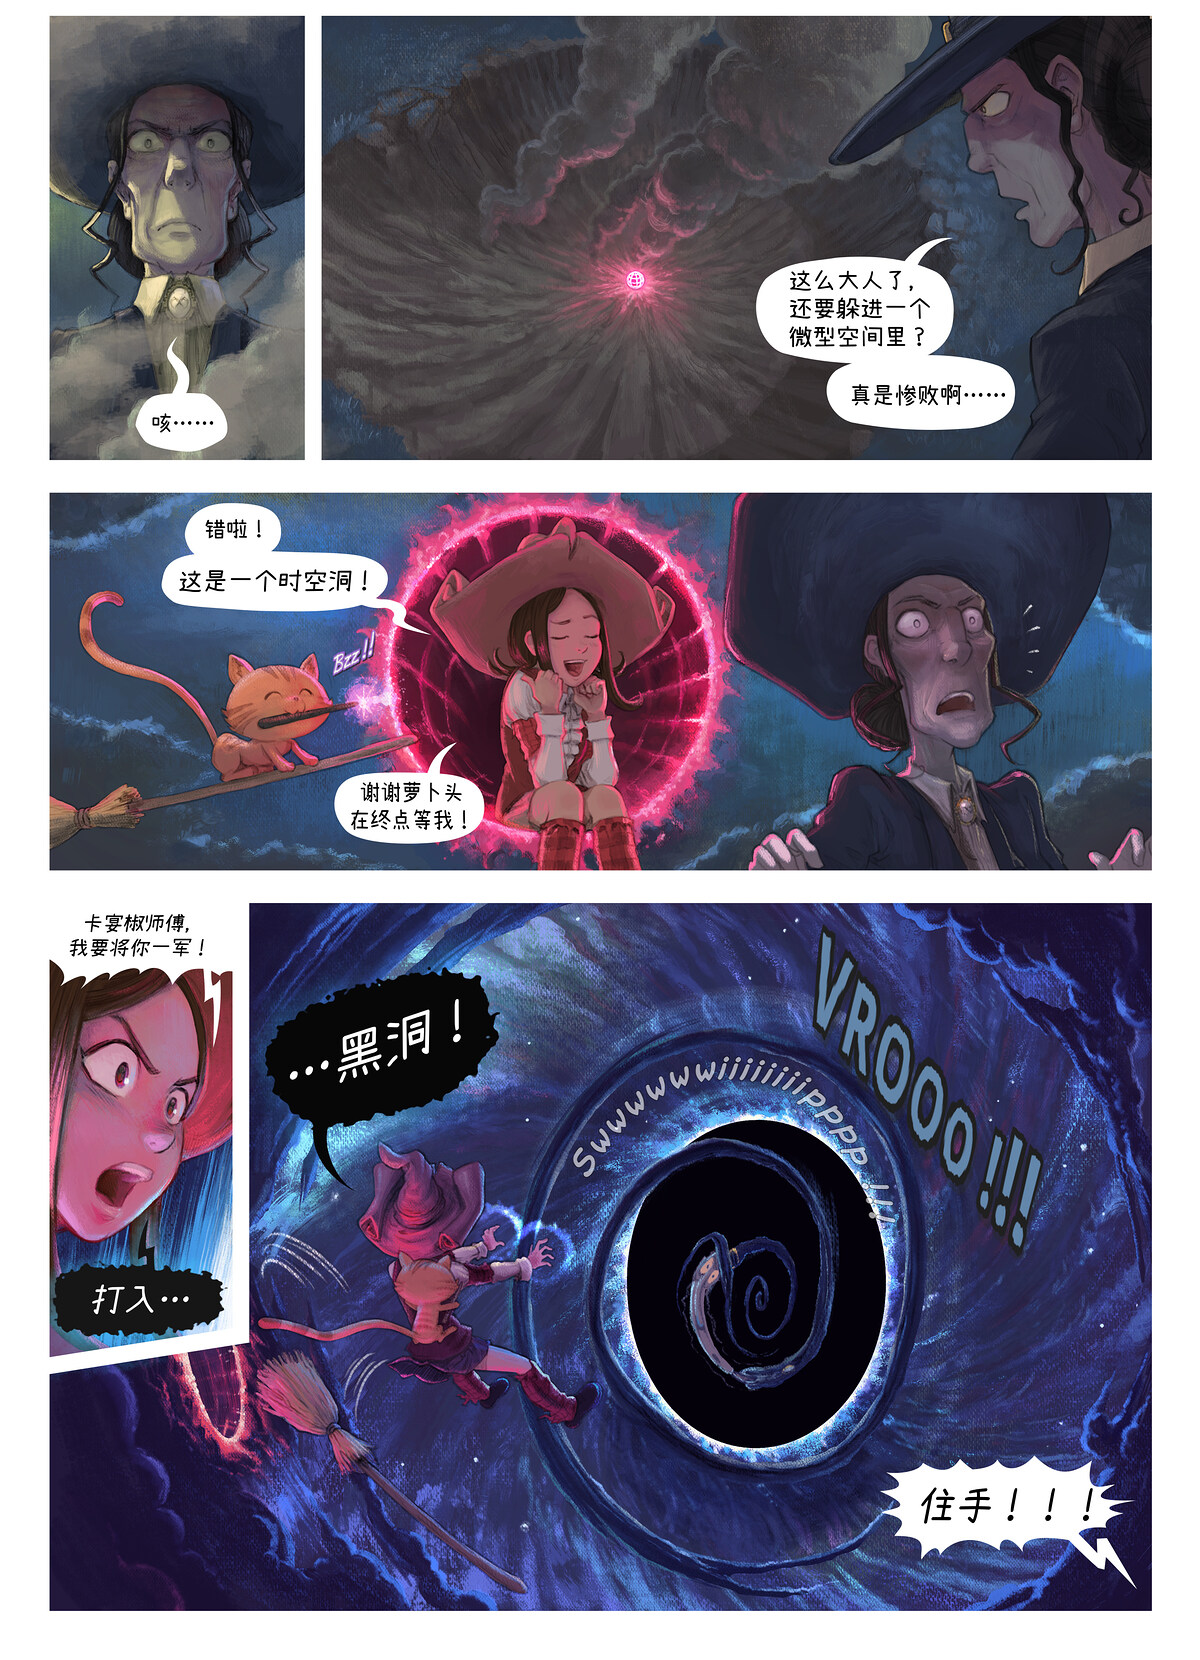 A webcomic page of Pepper&Carrot, 漫画全集 31 [cn], 页面 5